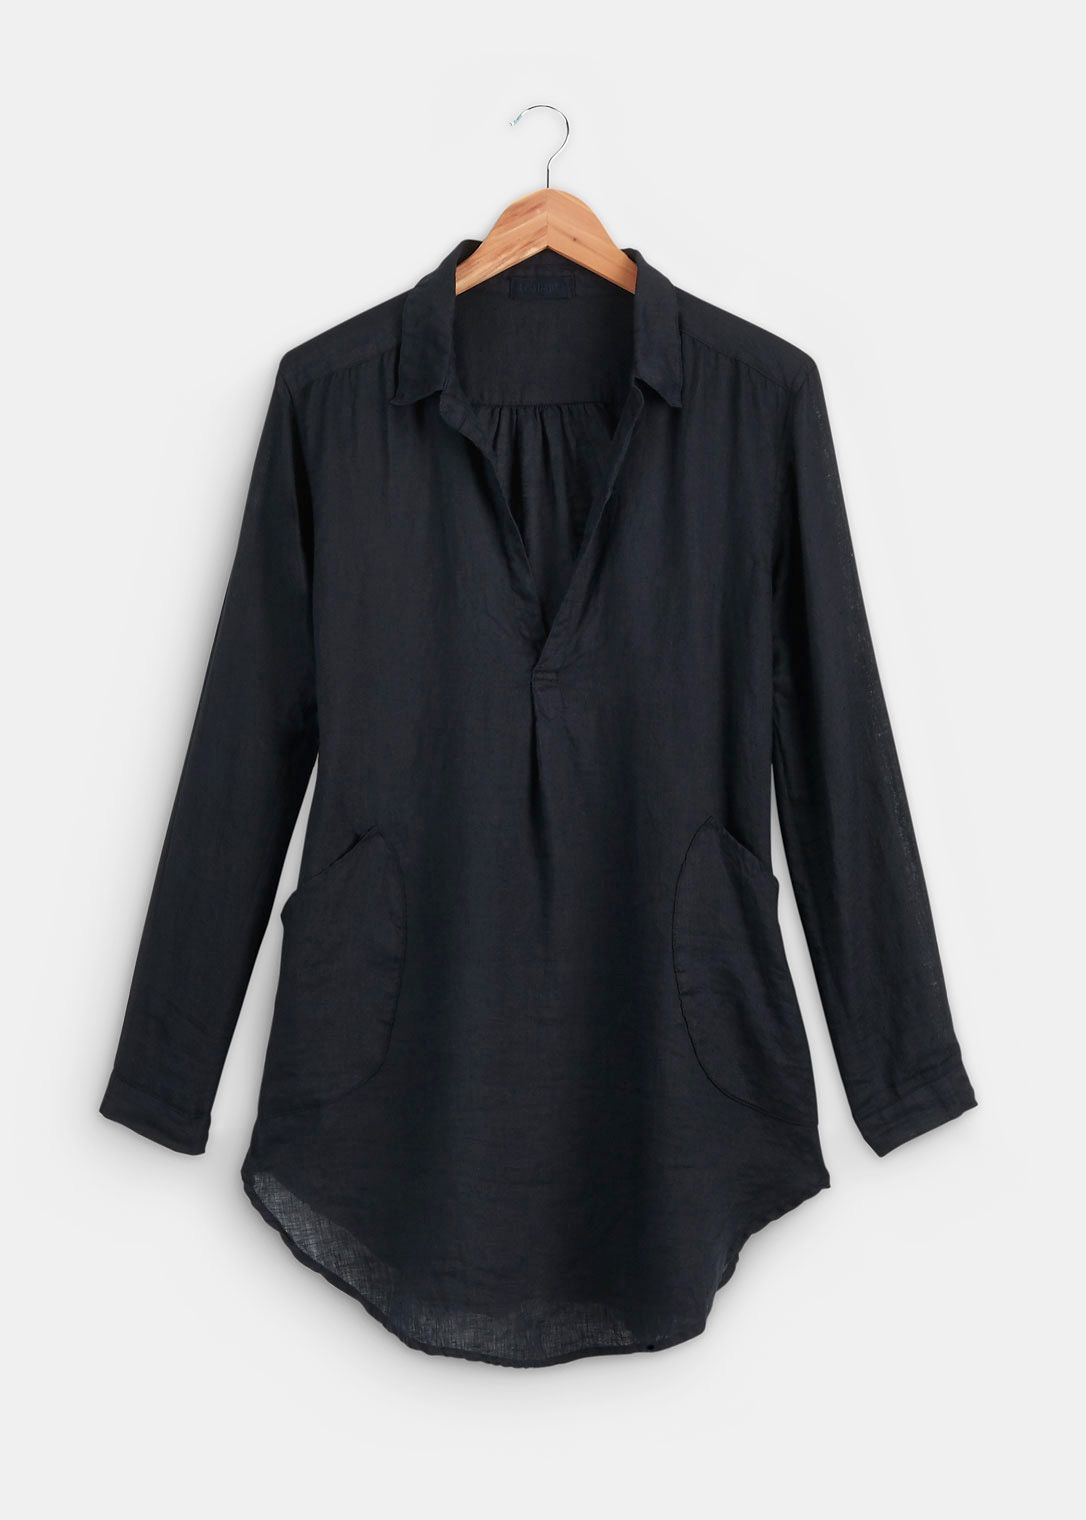 This rugged tunic riffs on the classic men's collared shirt but has some unmistakably feminine flourishes. Cut from crisp linen, it boasts a half-placket collar and sleeves that roll up with ease. Oversized pockets will hold all of your most important things (lip gloss, phone, keys, and more). Dress it up for Sunday brunch with friends by adding a low-slung belt, slim-fit jeans, and ballet flats.  100% linen Straight silhouette with a slight oversized fit True to size Machine washable…